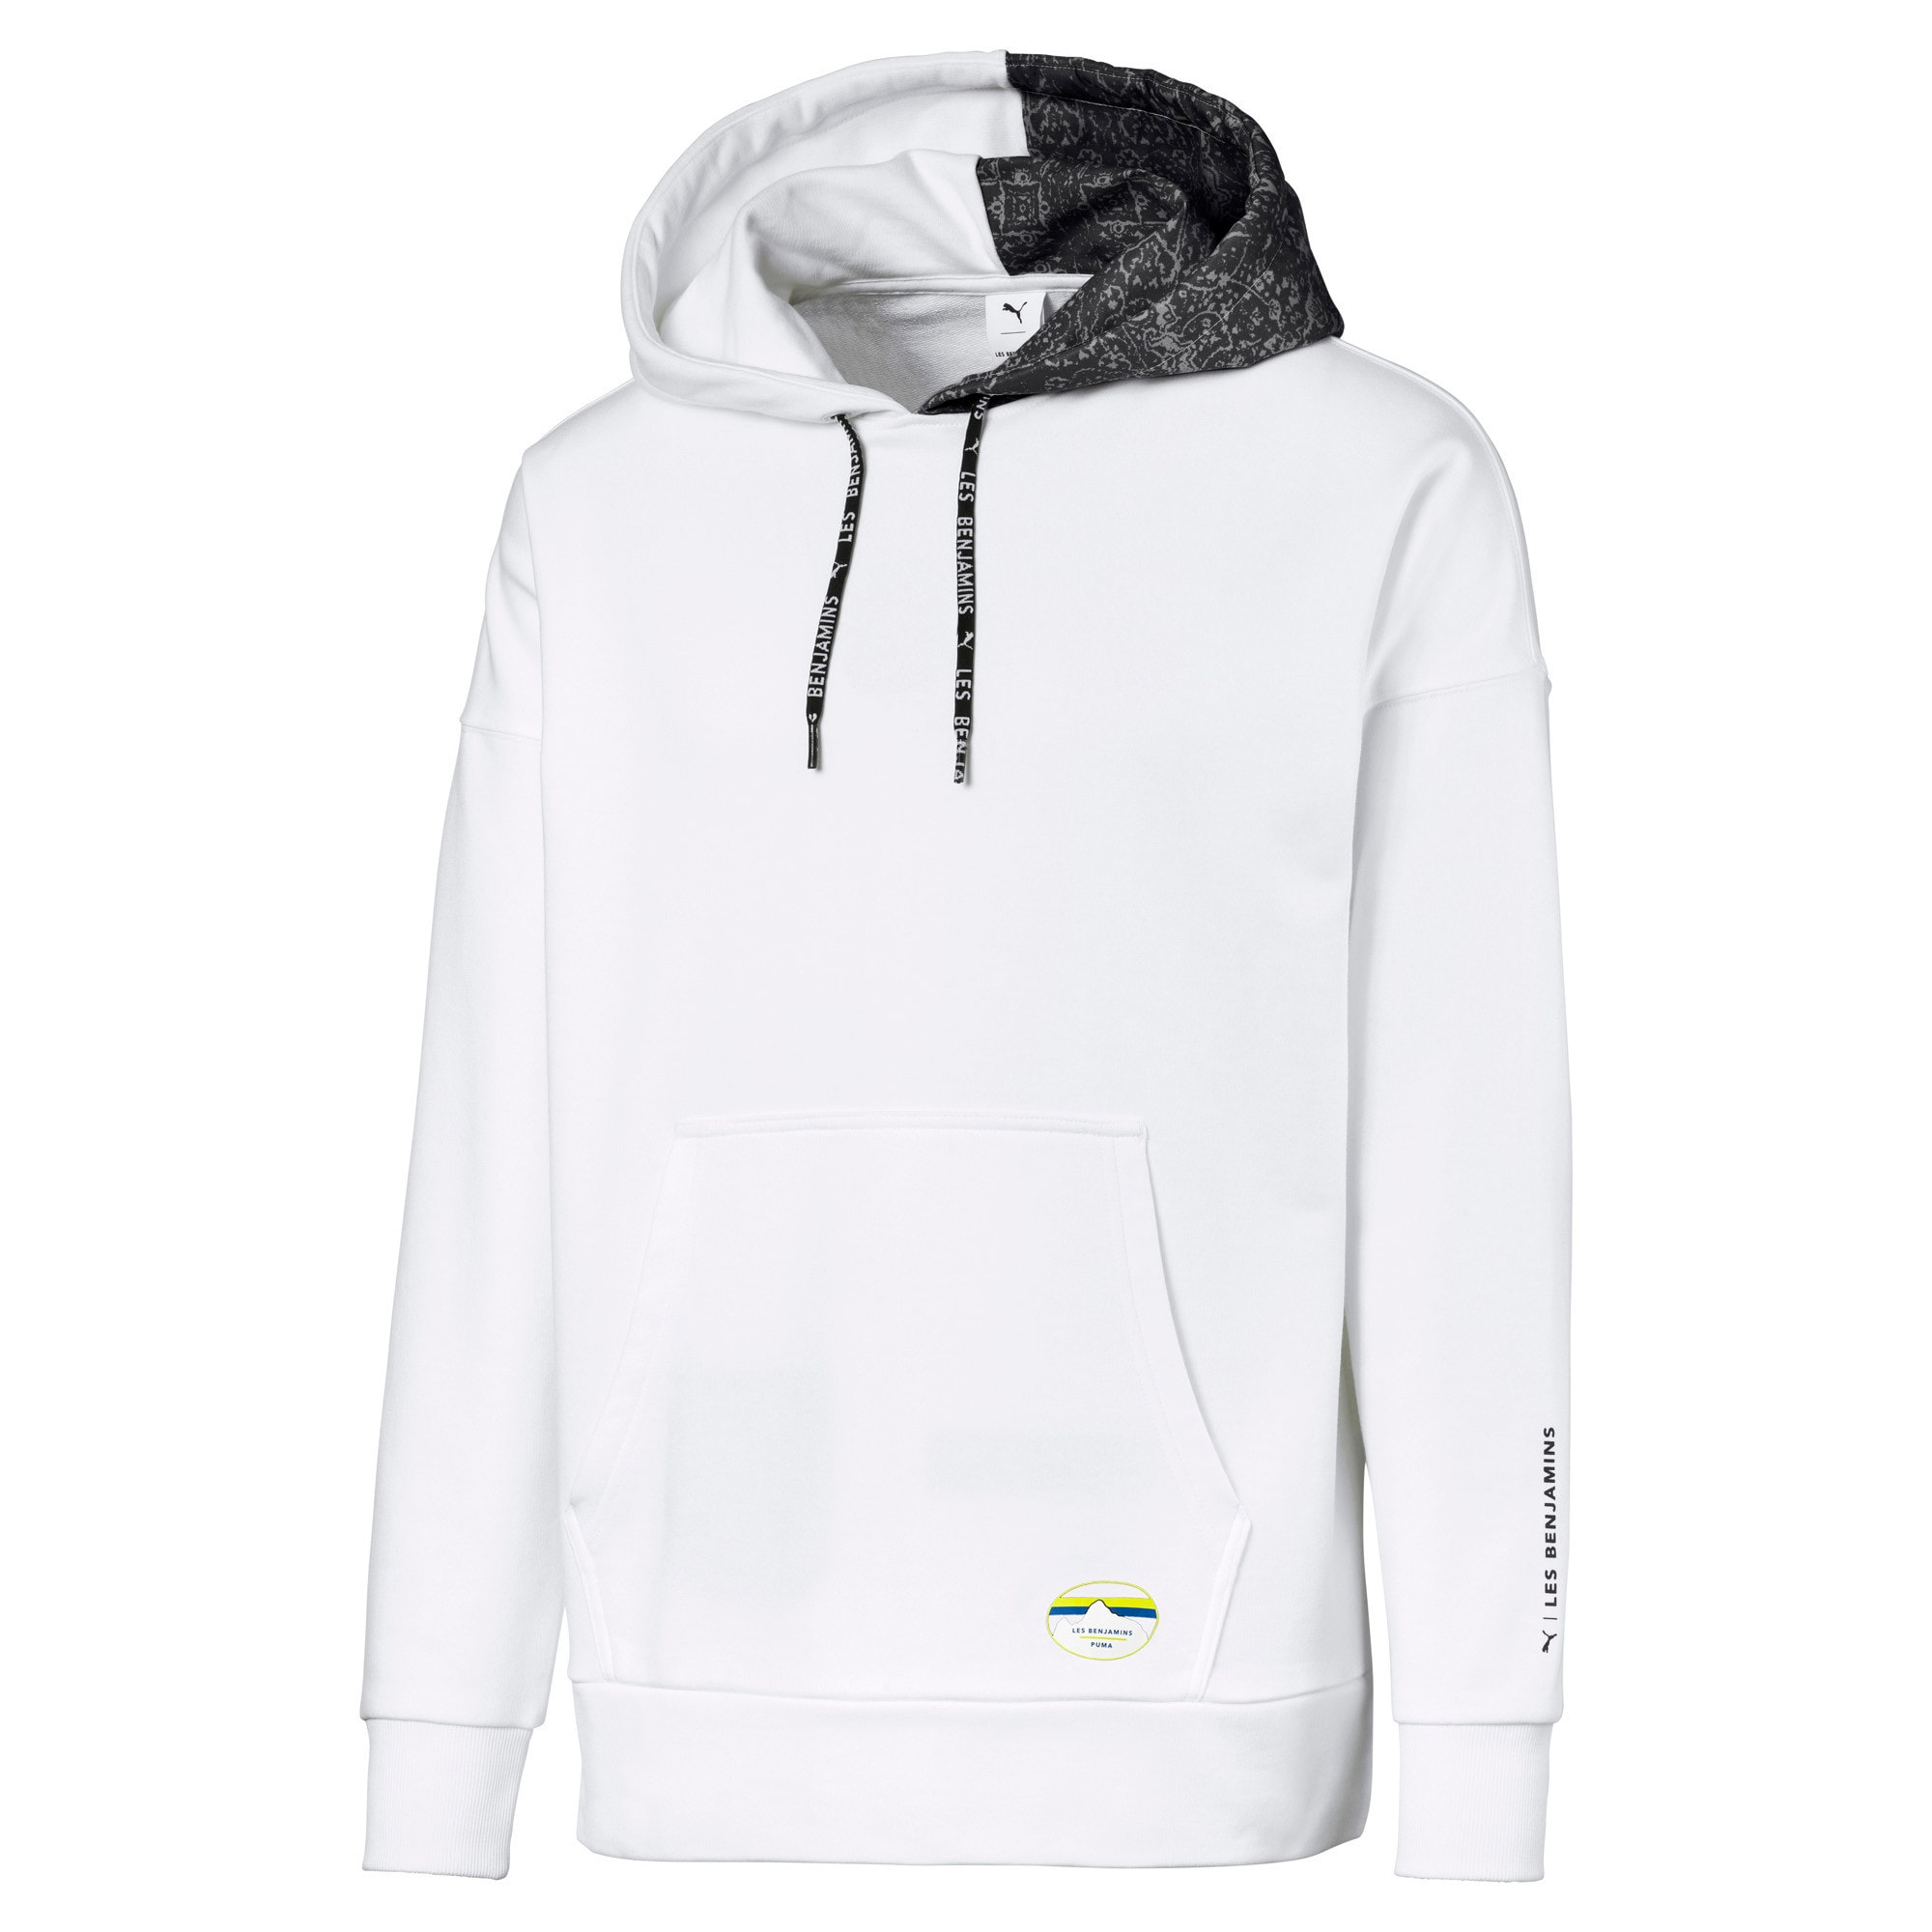 Thumbnail 1 of PUMA x LES BENJAMINS Men's Hoodie, Puma White, medium